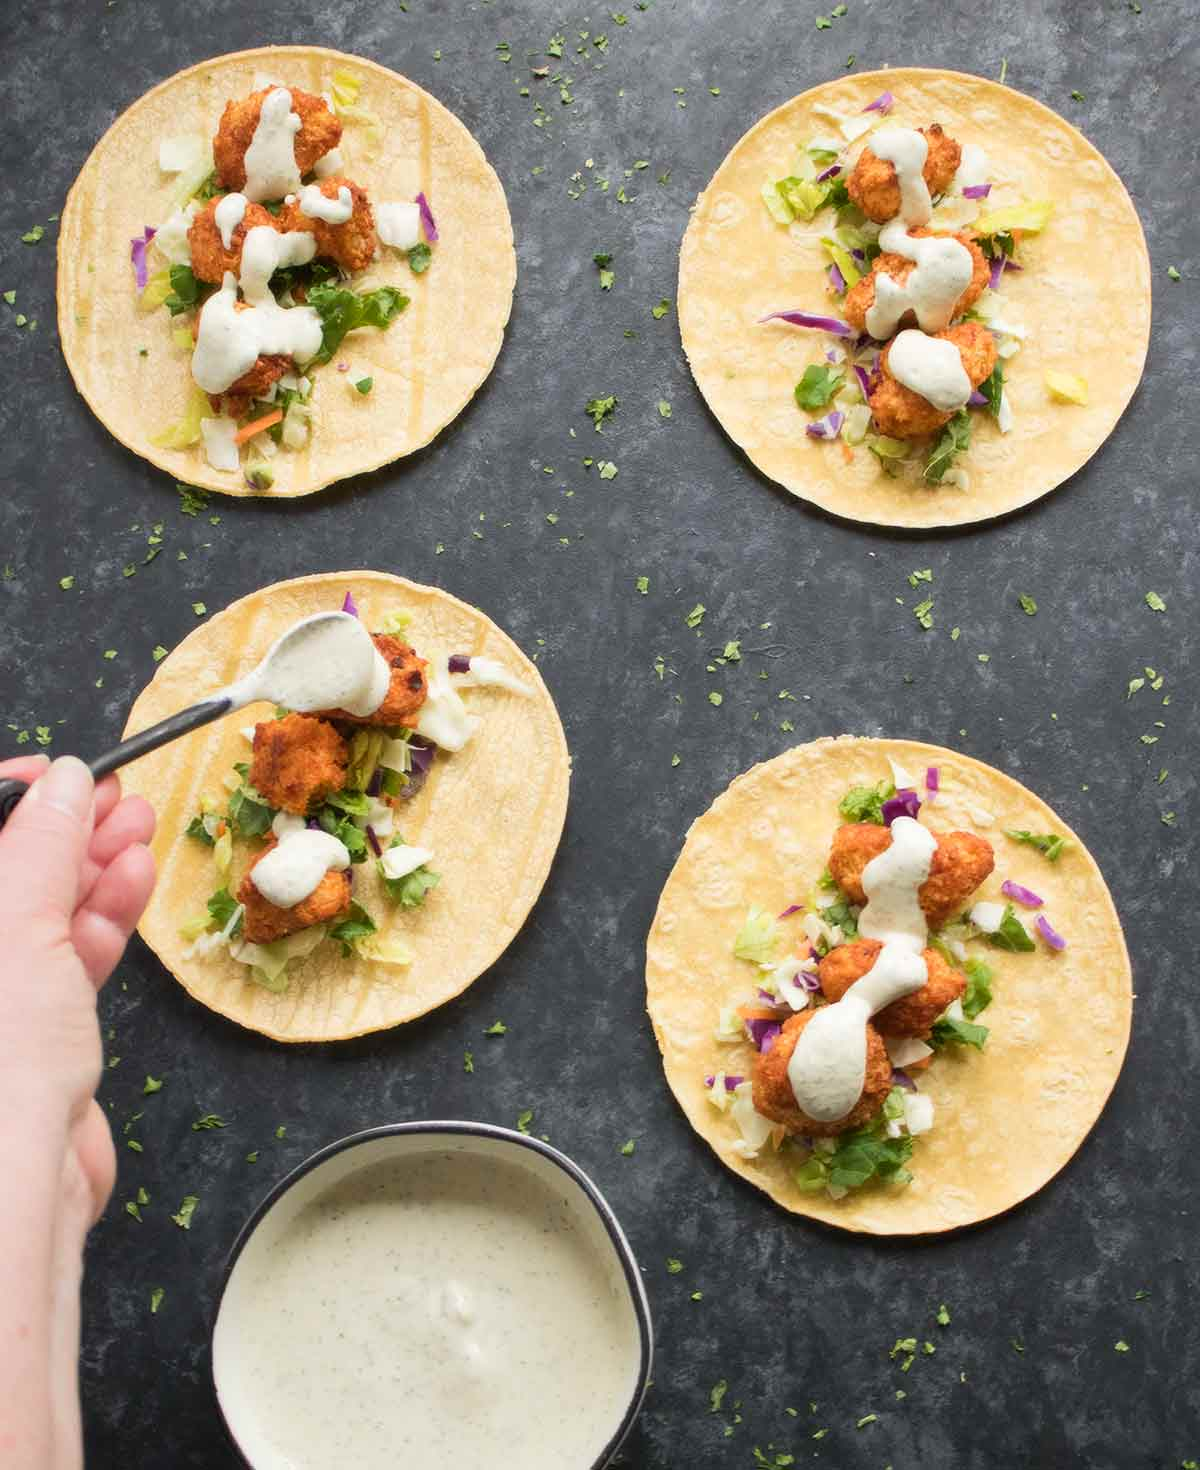 Topping the cauliflower tacos with the vegan ranch dressing